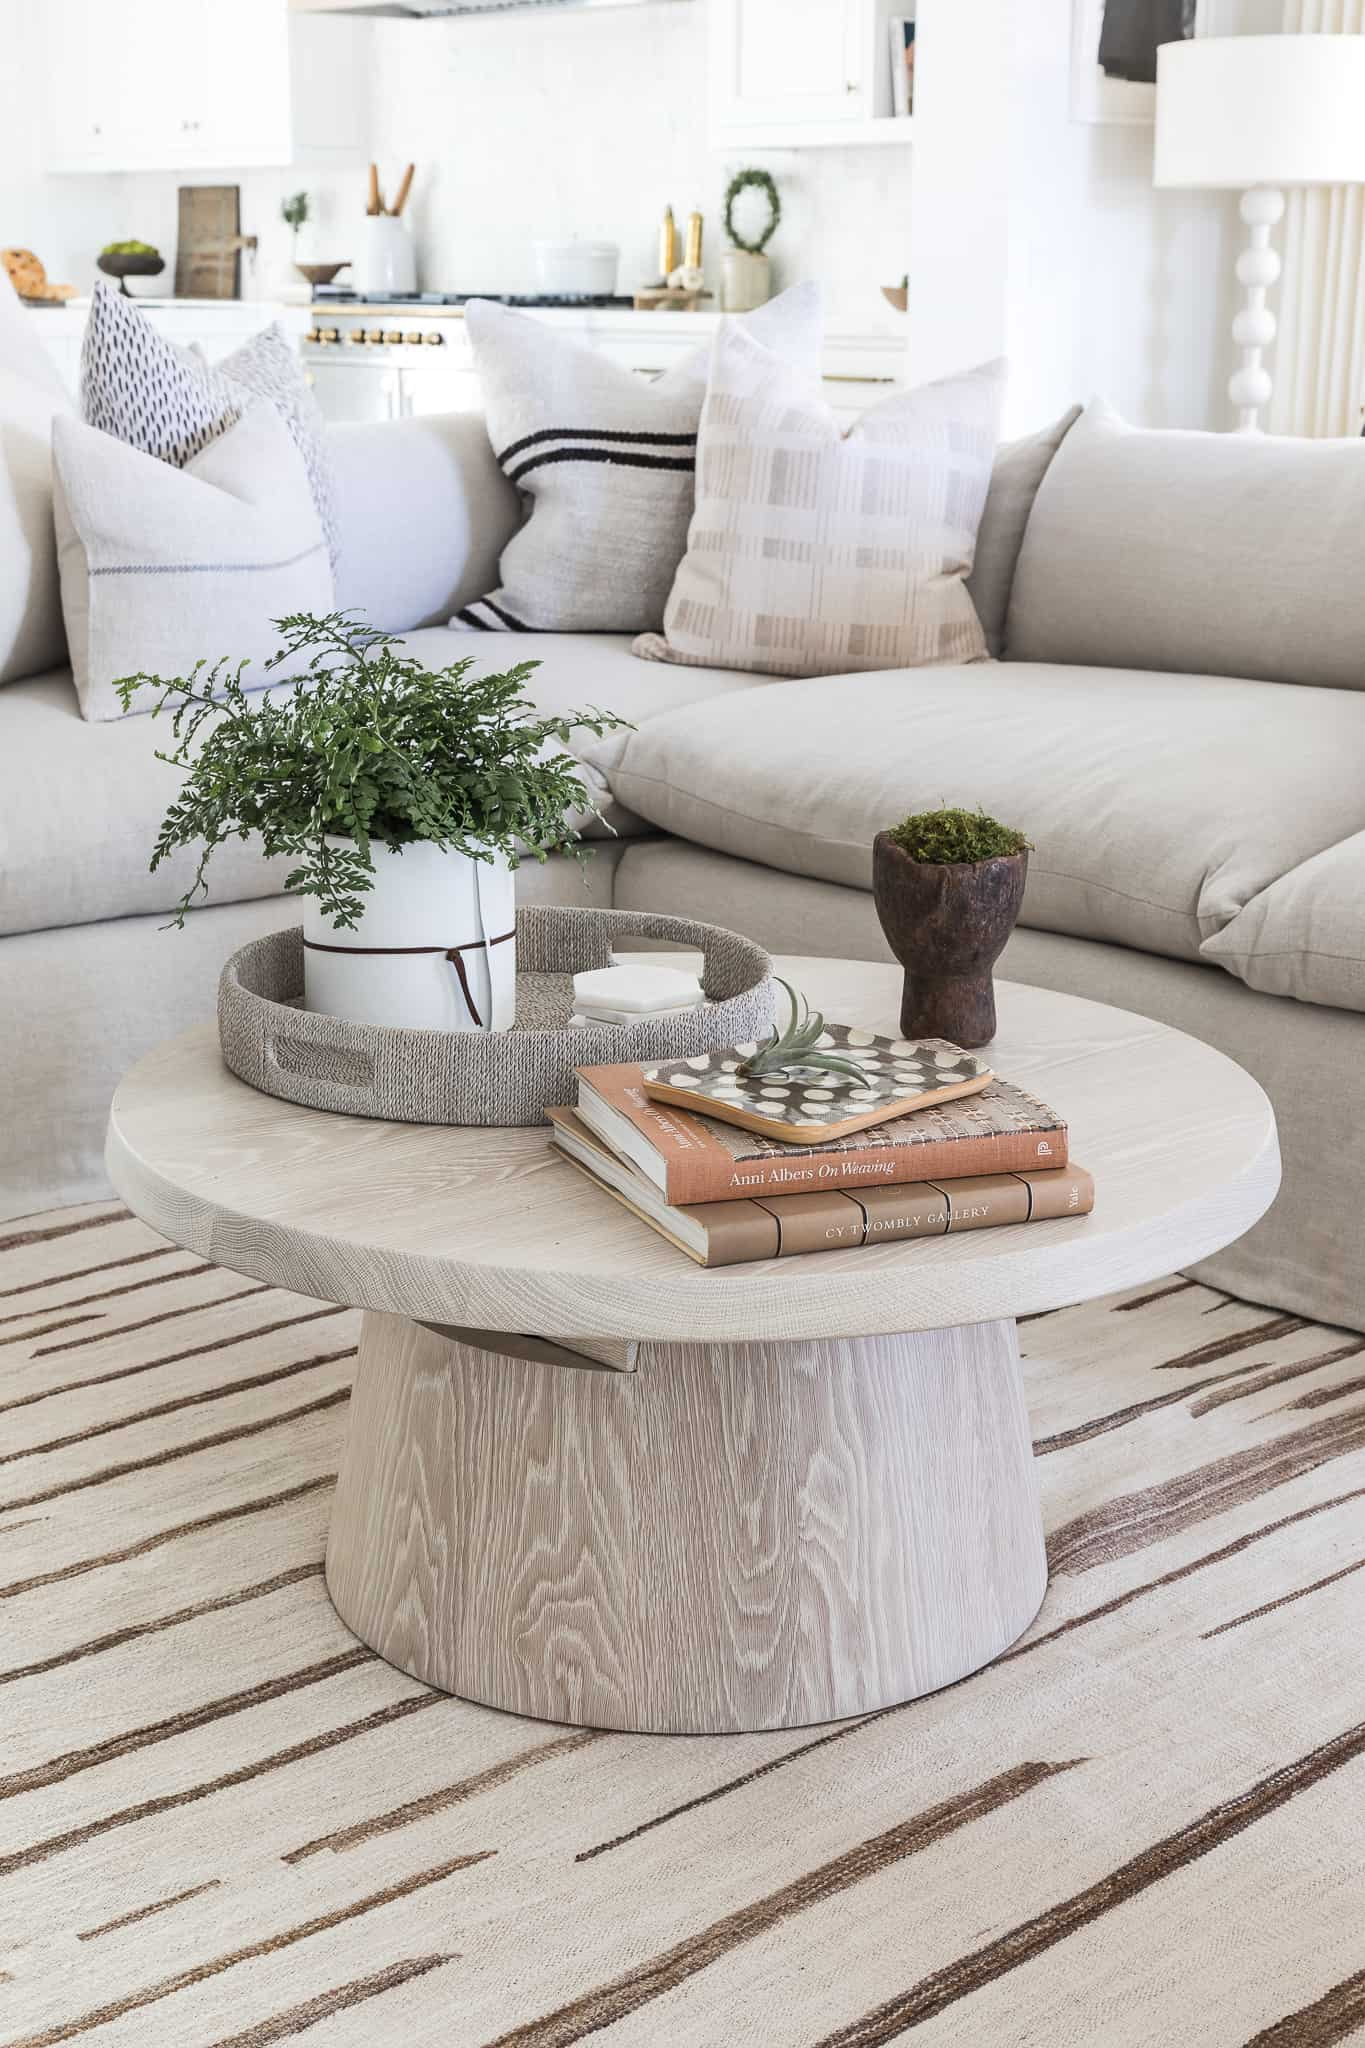 How To Style A Coffee Table - Mindy Gayer Design Co.